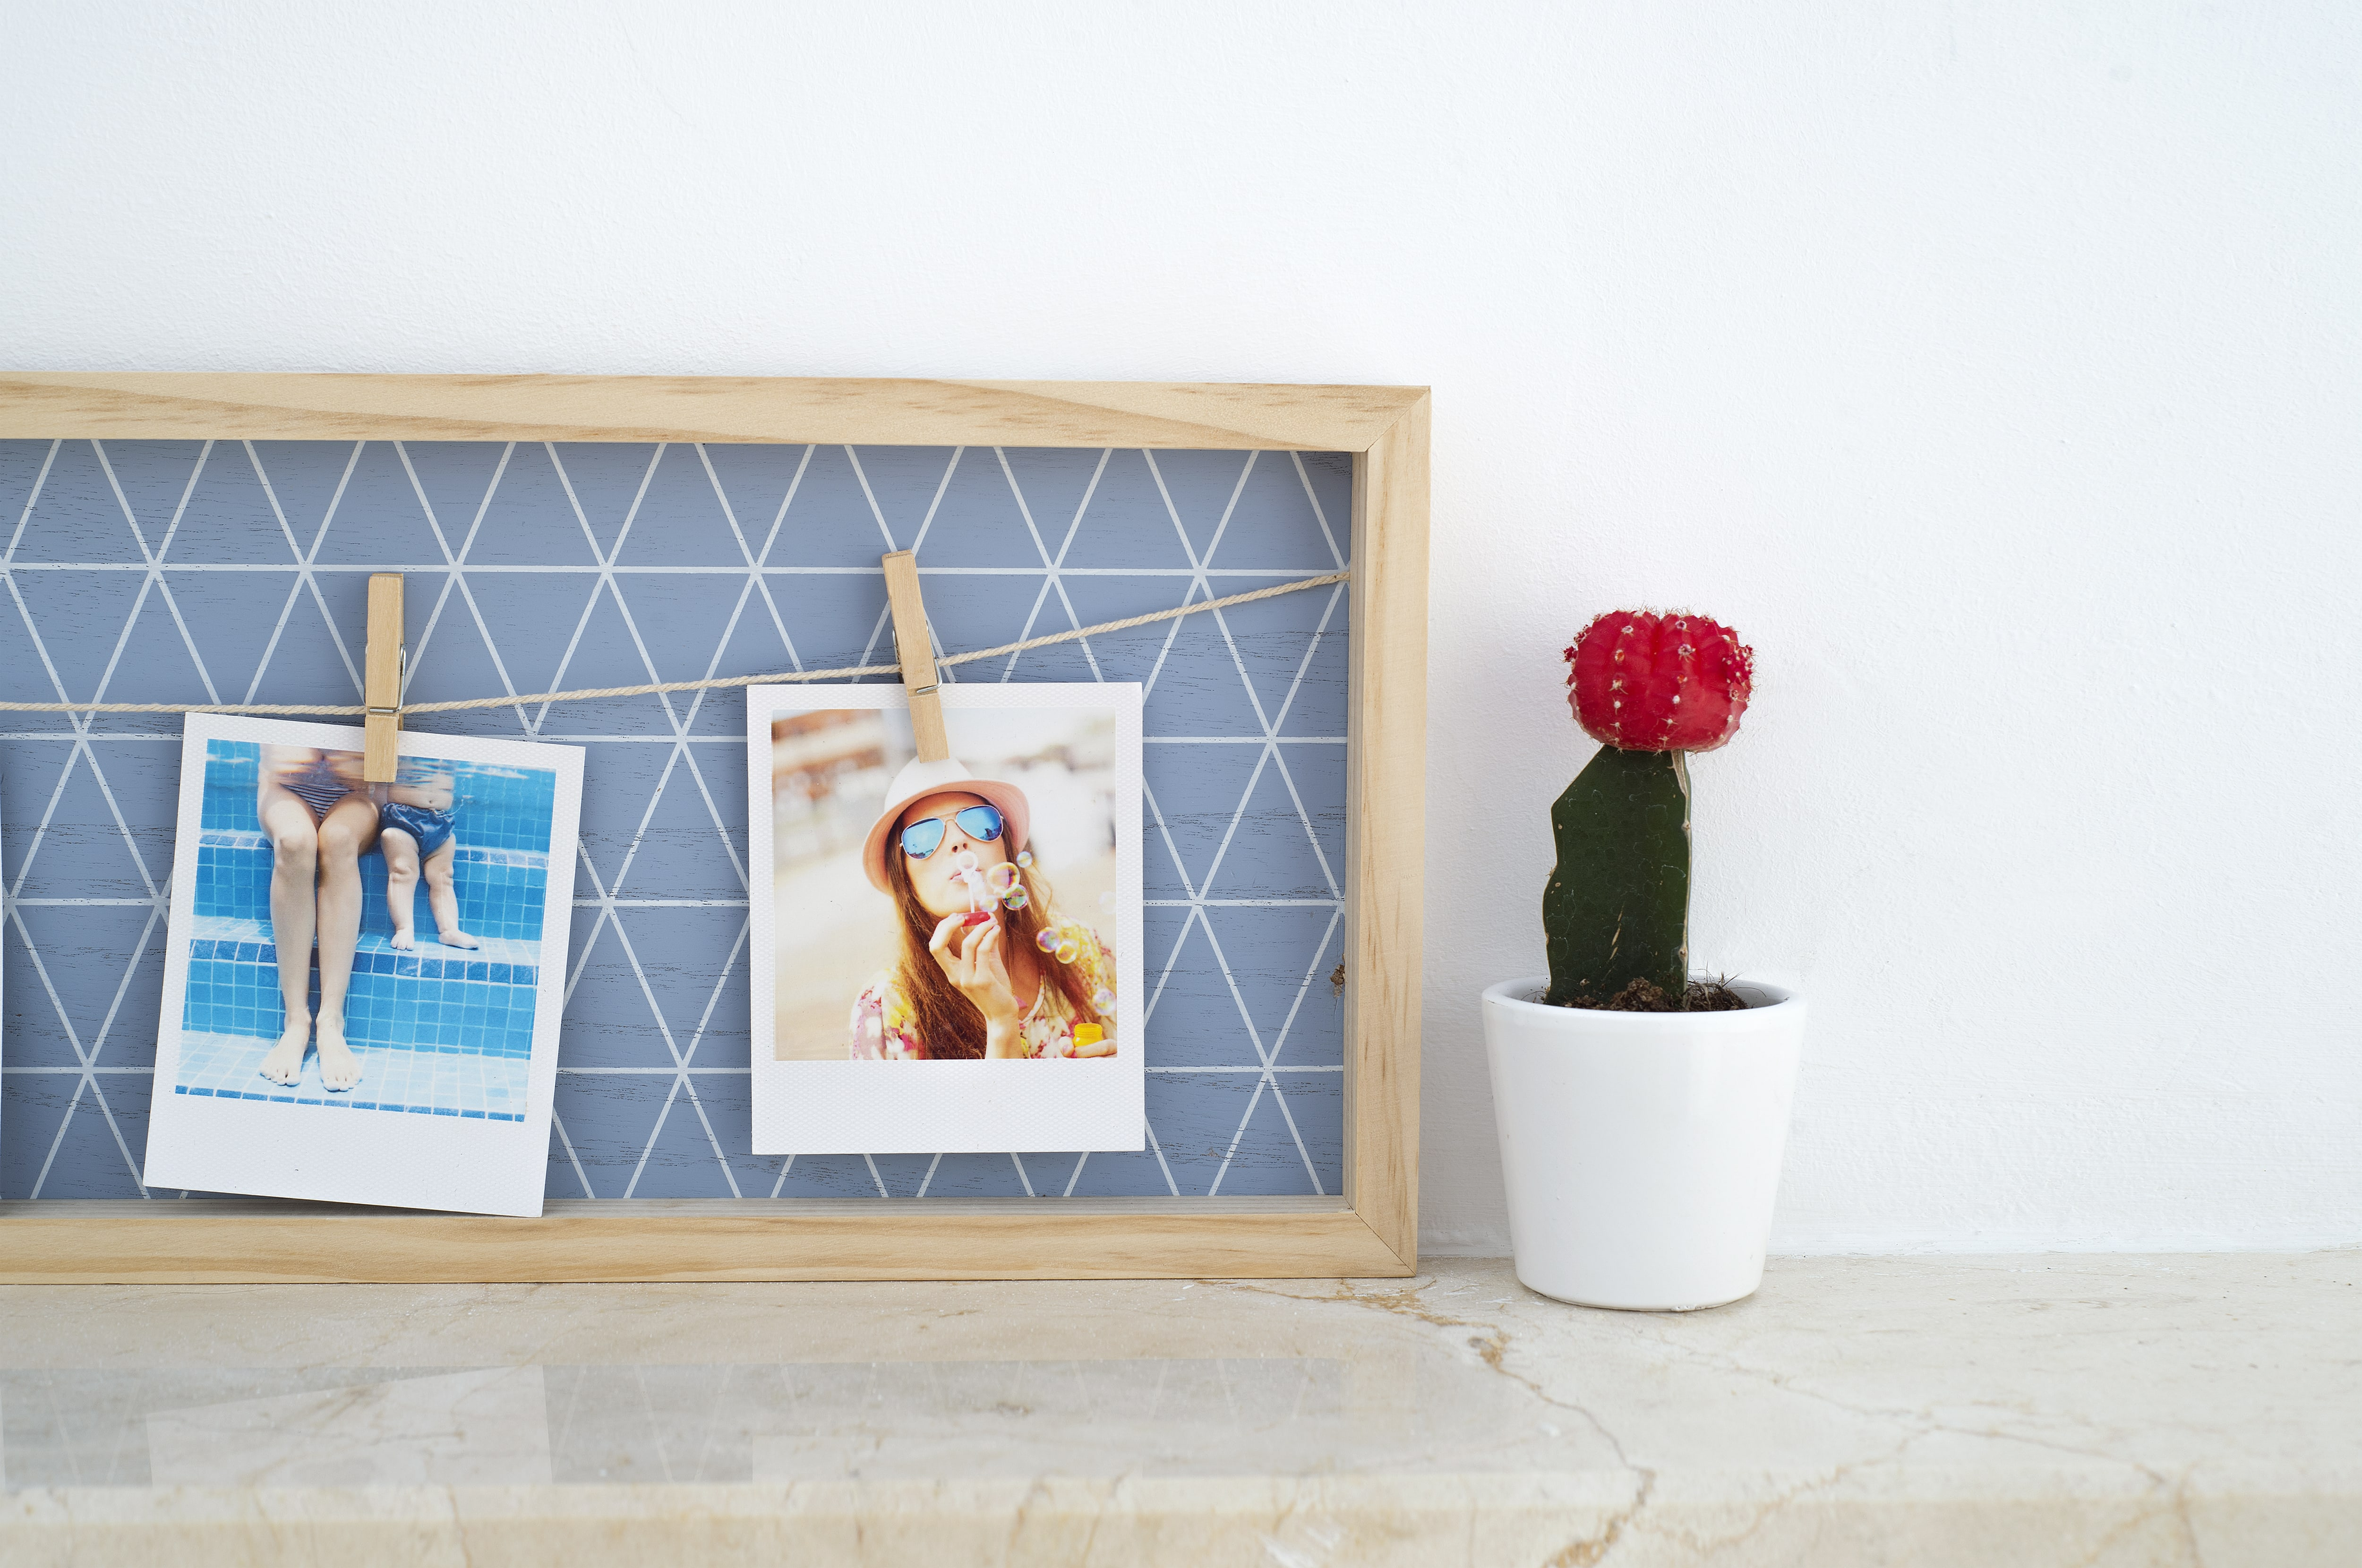 10 tendencias para decorar tus paredes con fotos reveladas - Decoracion paredes vintage ...